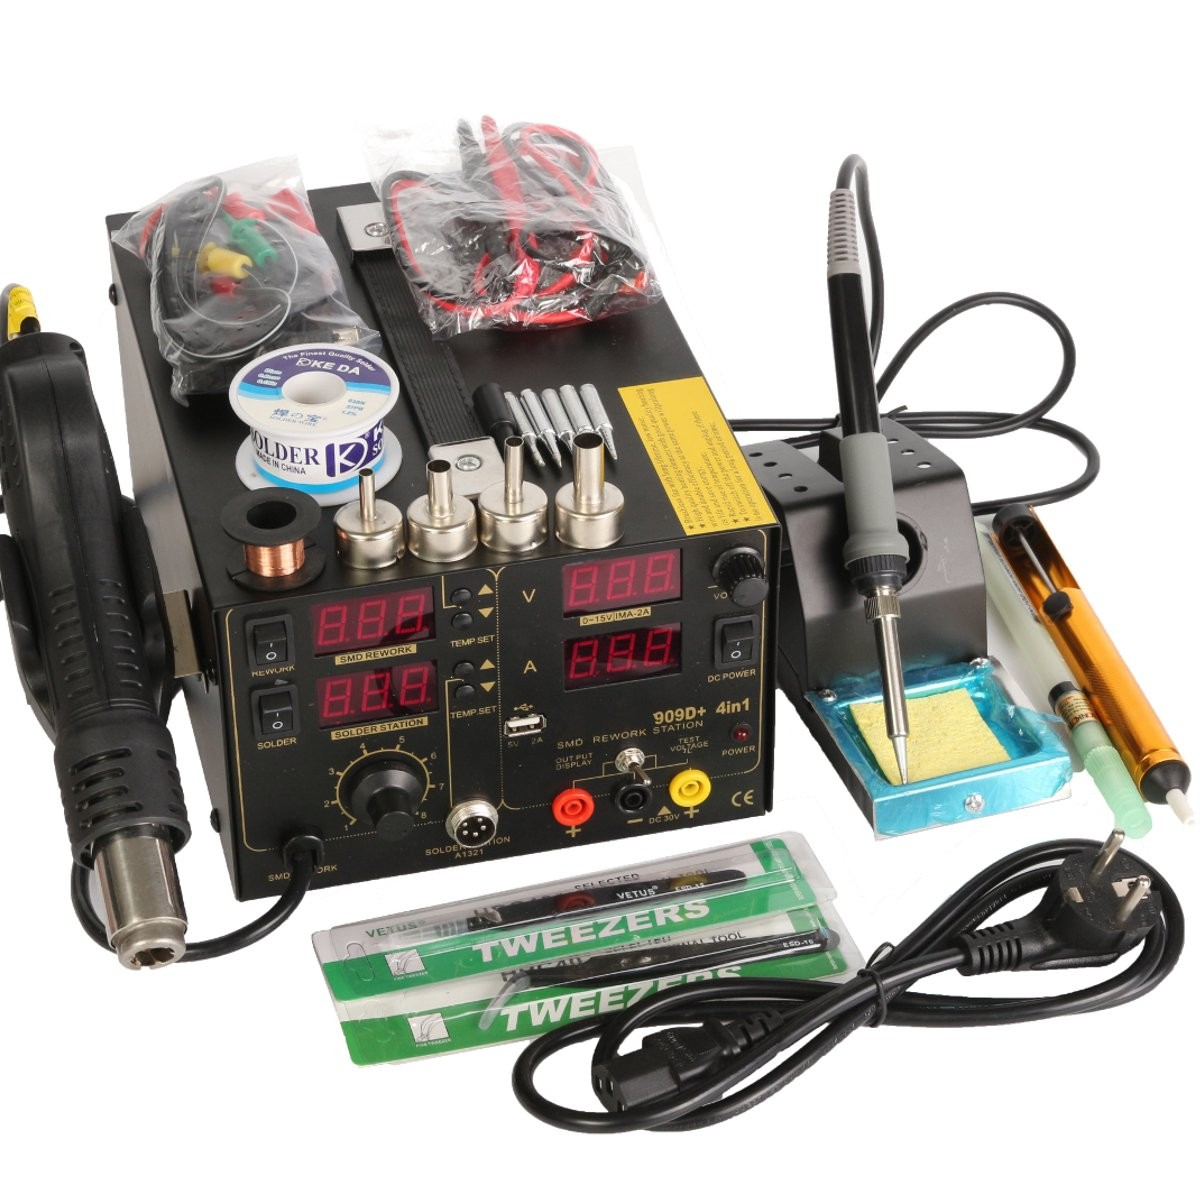 Saike 909D+ Rework Soldering Station + Hot Air Gun + DC Power Supply